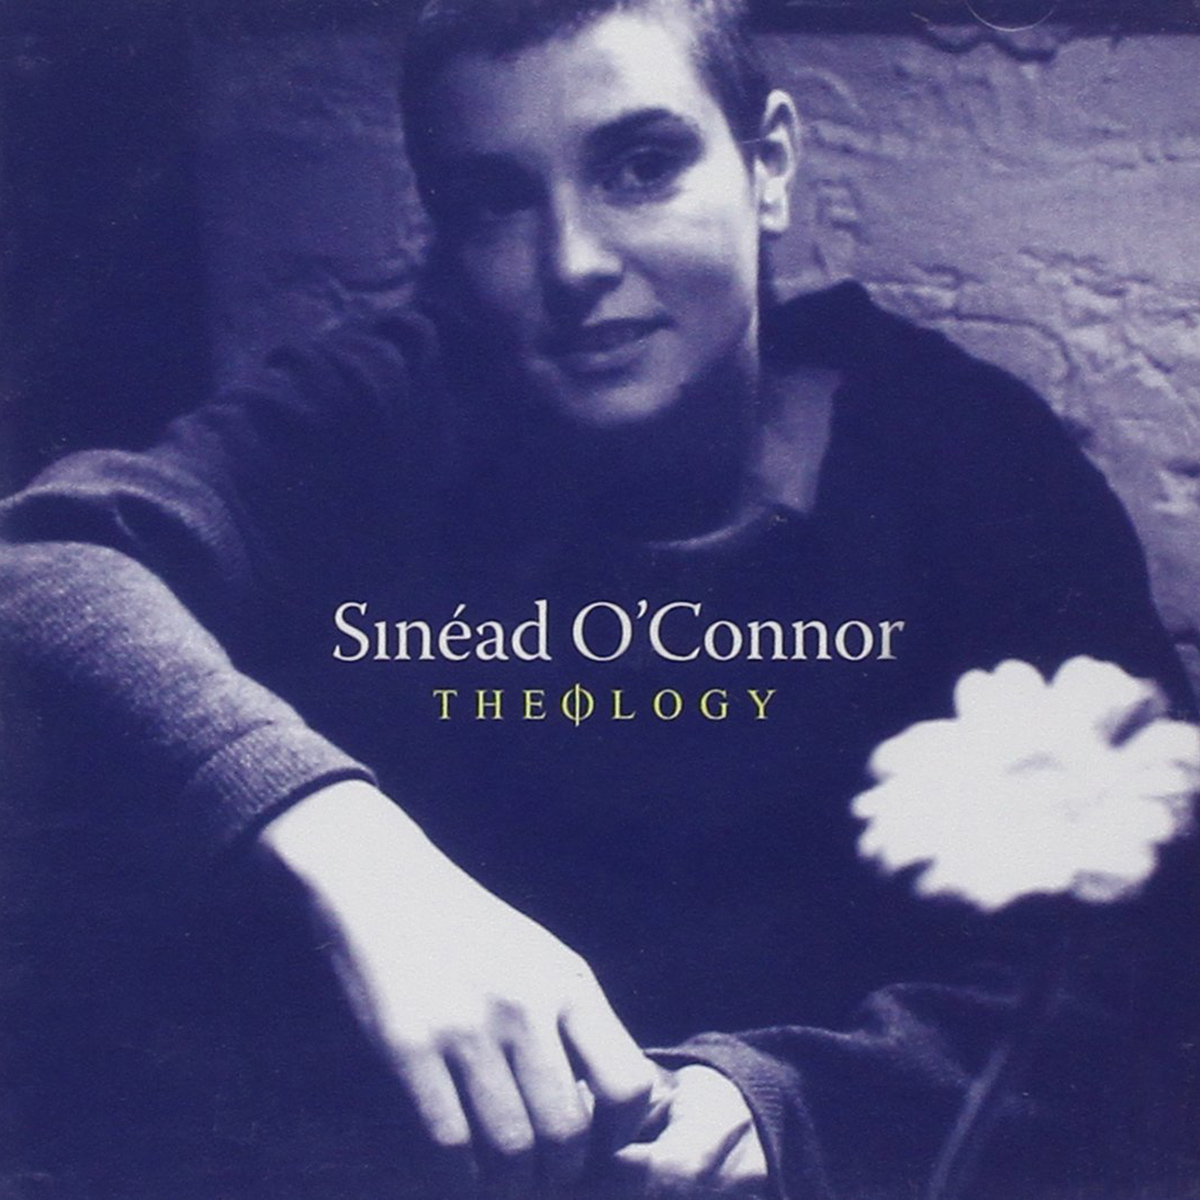 Sinéad O'Connor, Theology